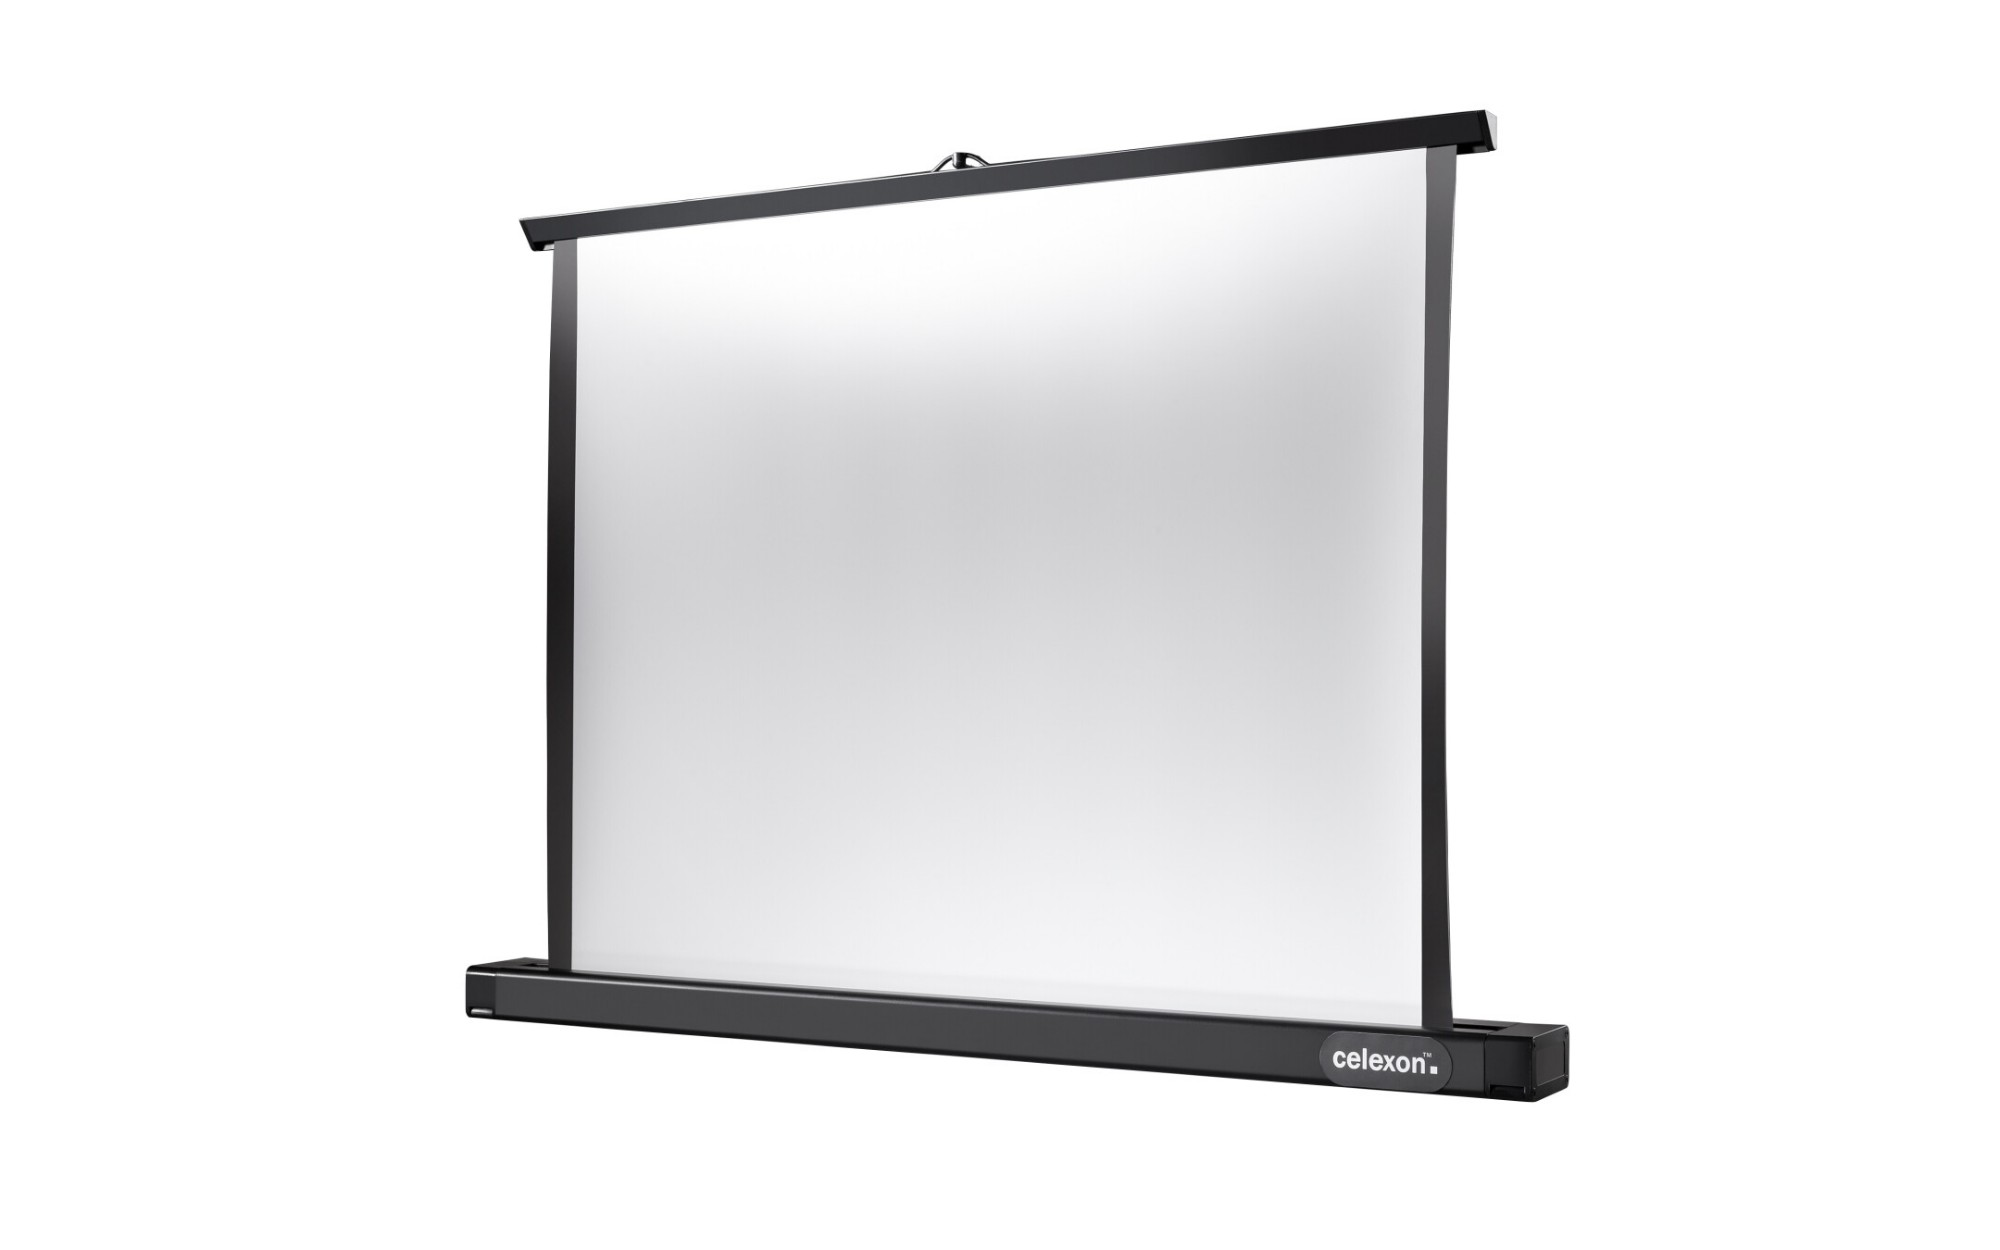 Celexon - Table Top Professional - 89cm x 50cm Super Portable Projector Screen